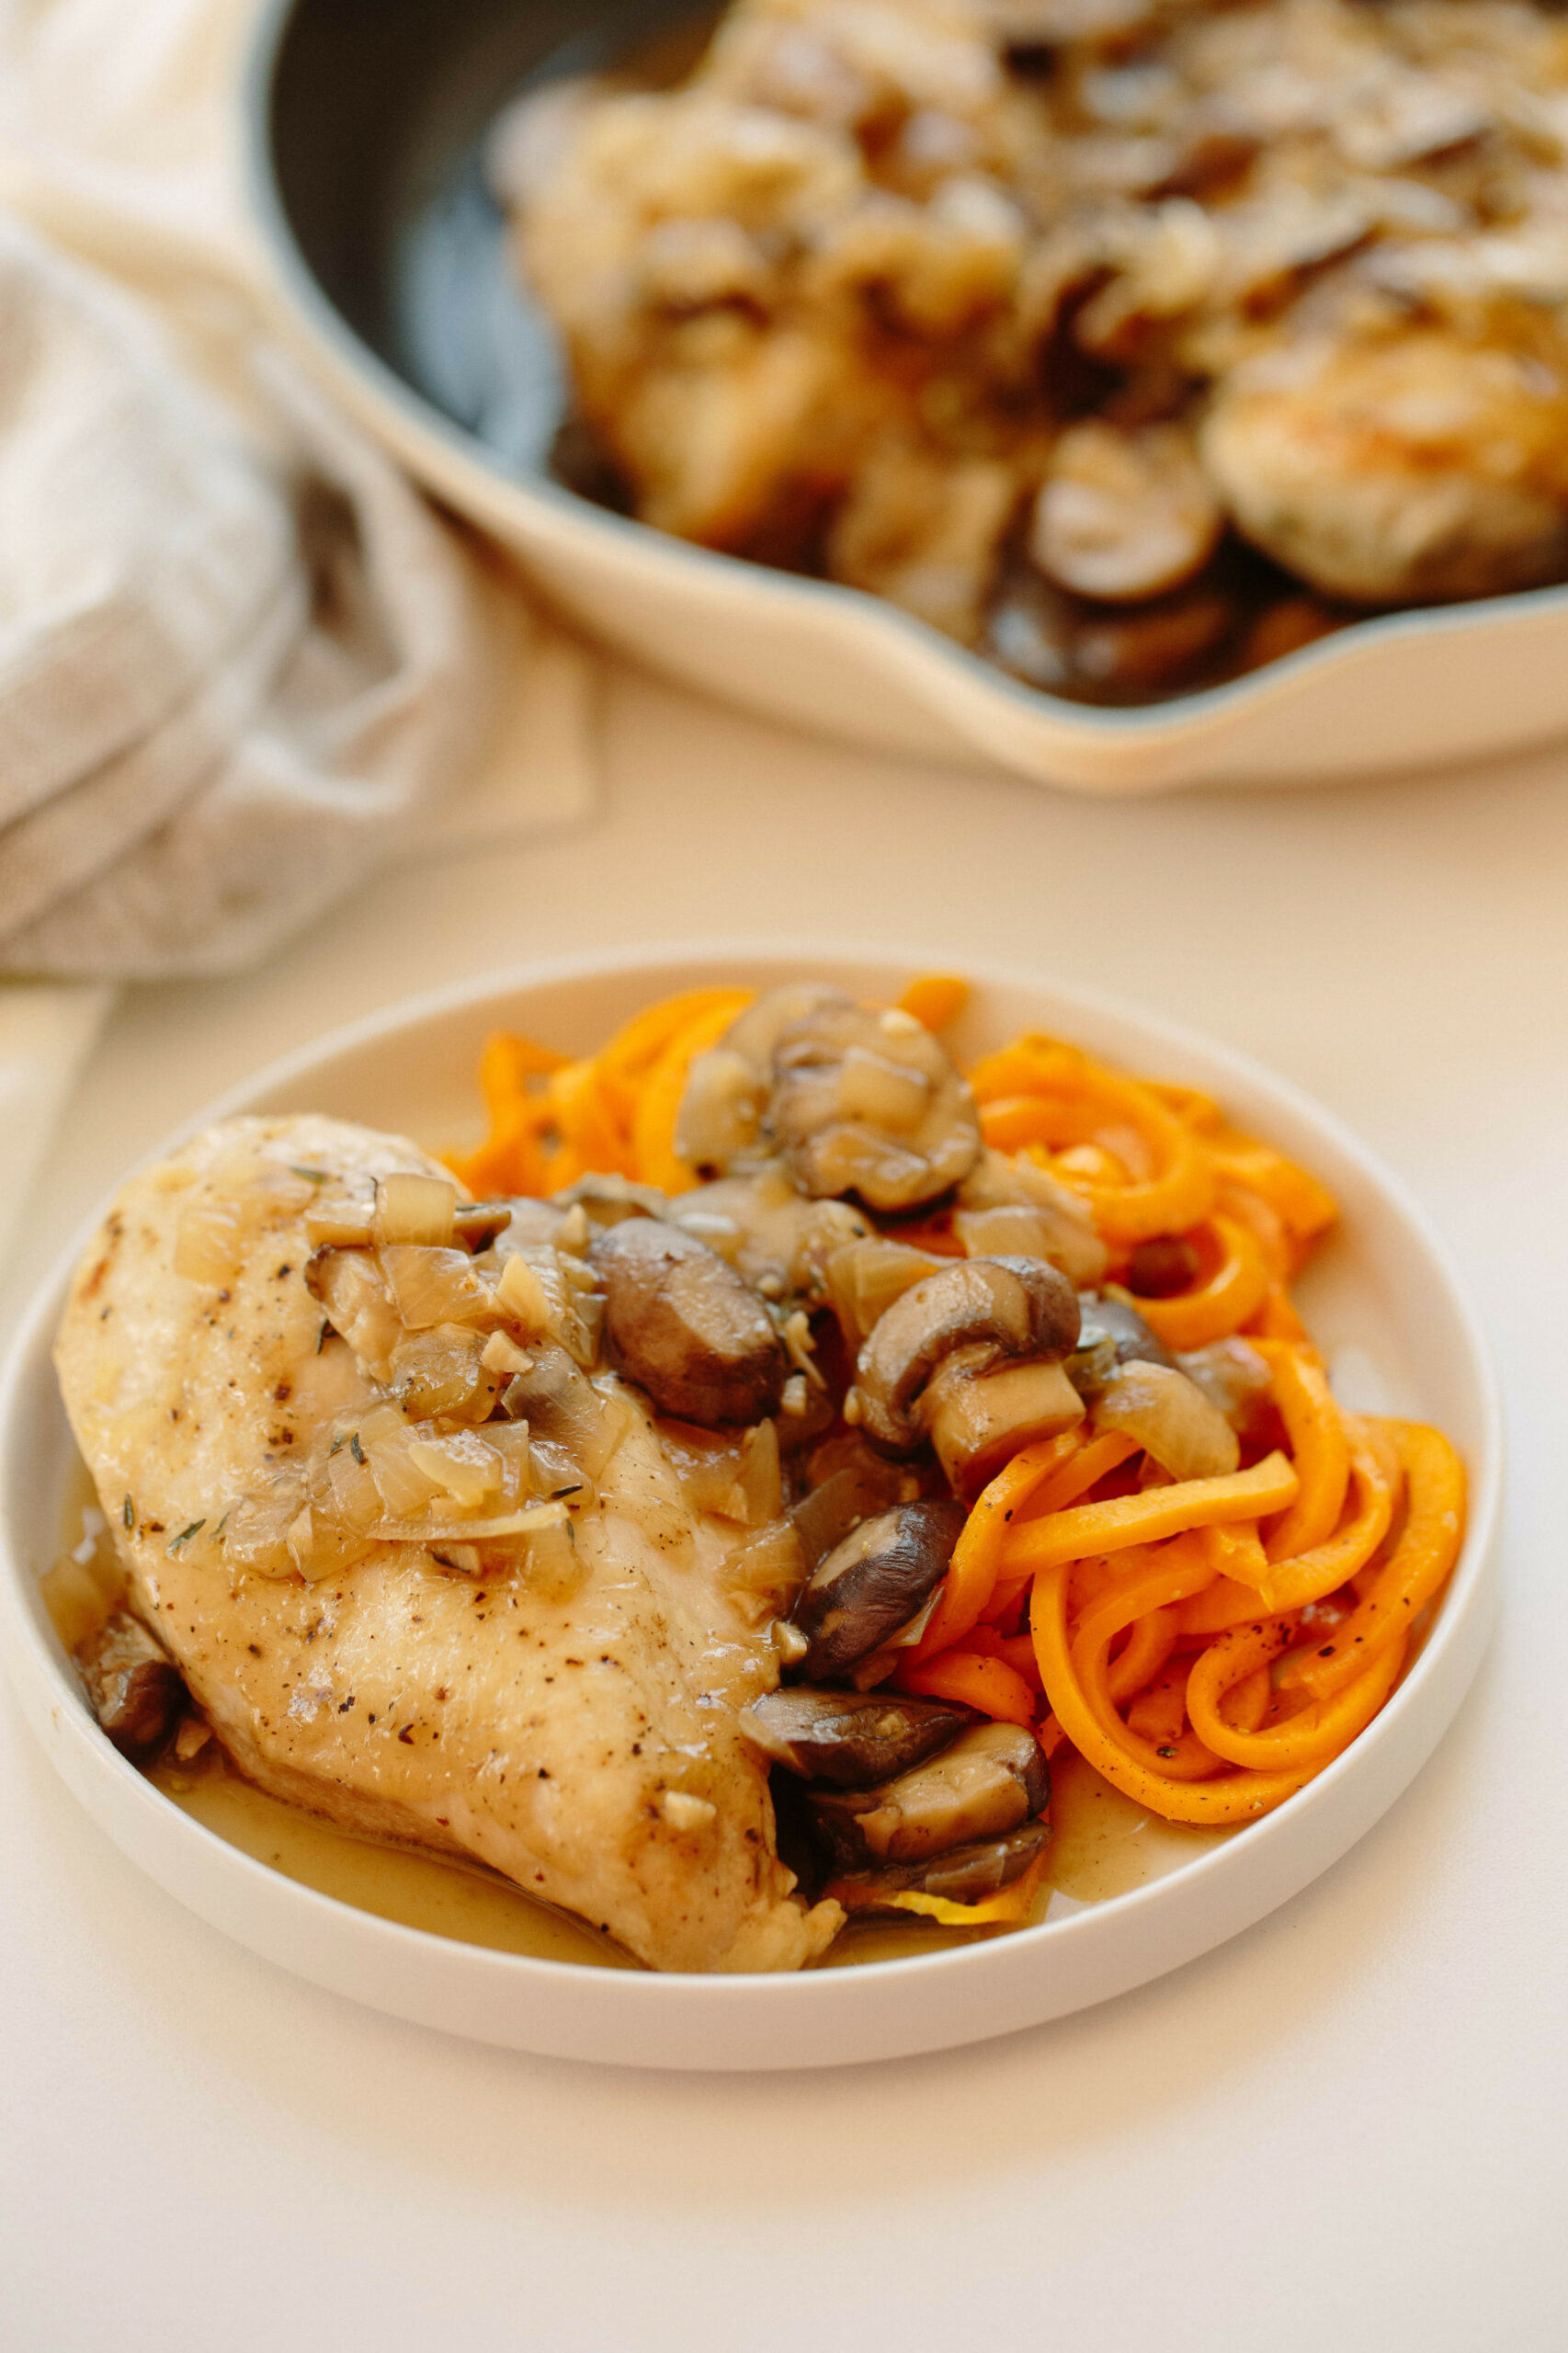 Chicken In Mushroom Sauce With Butternut Squash Noodles - Noodle Recipes Chicken